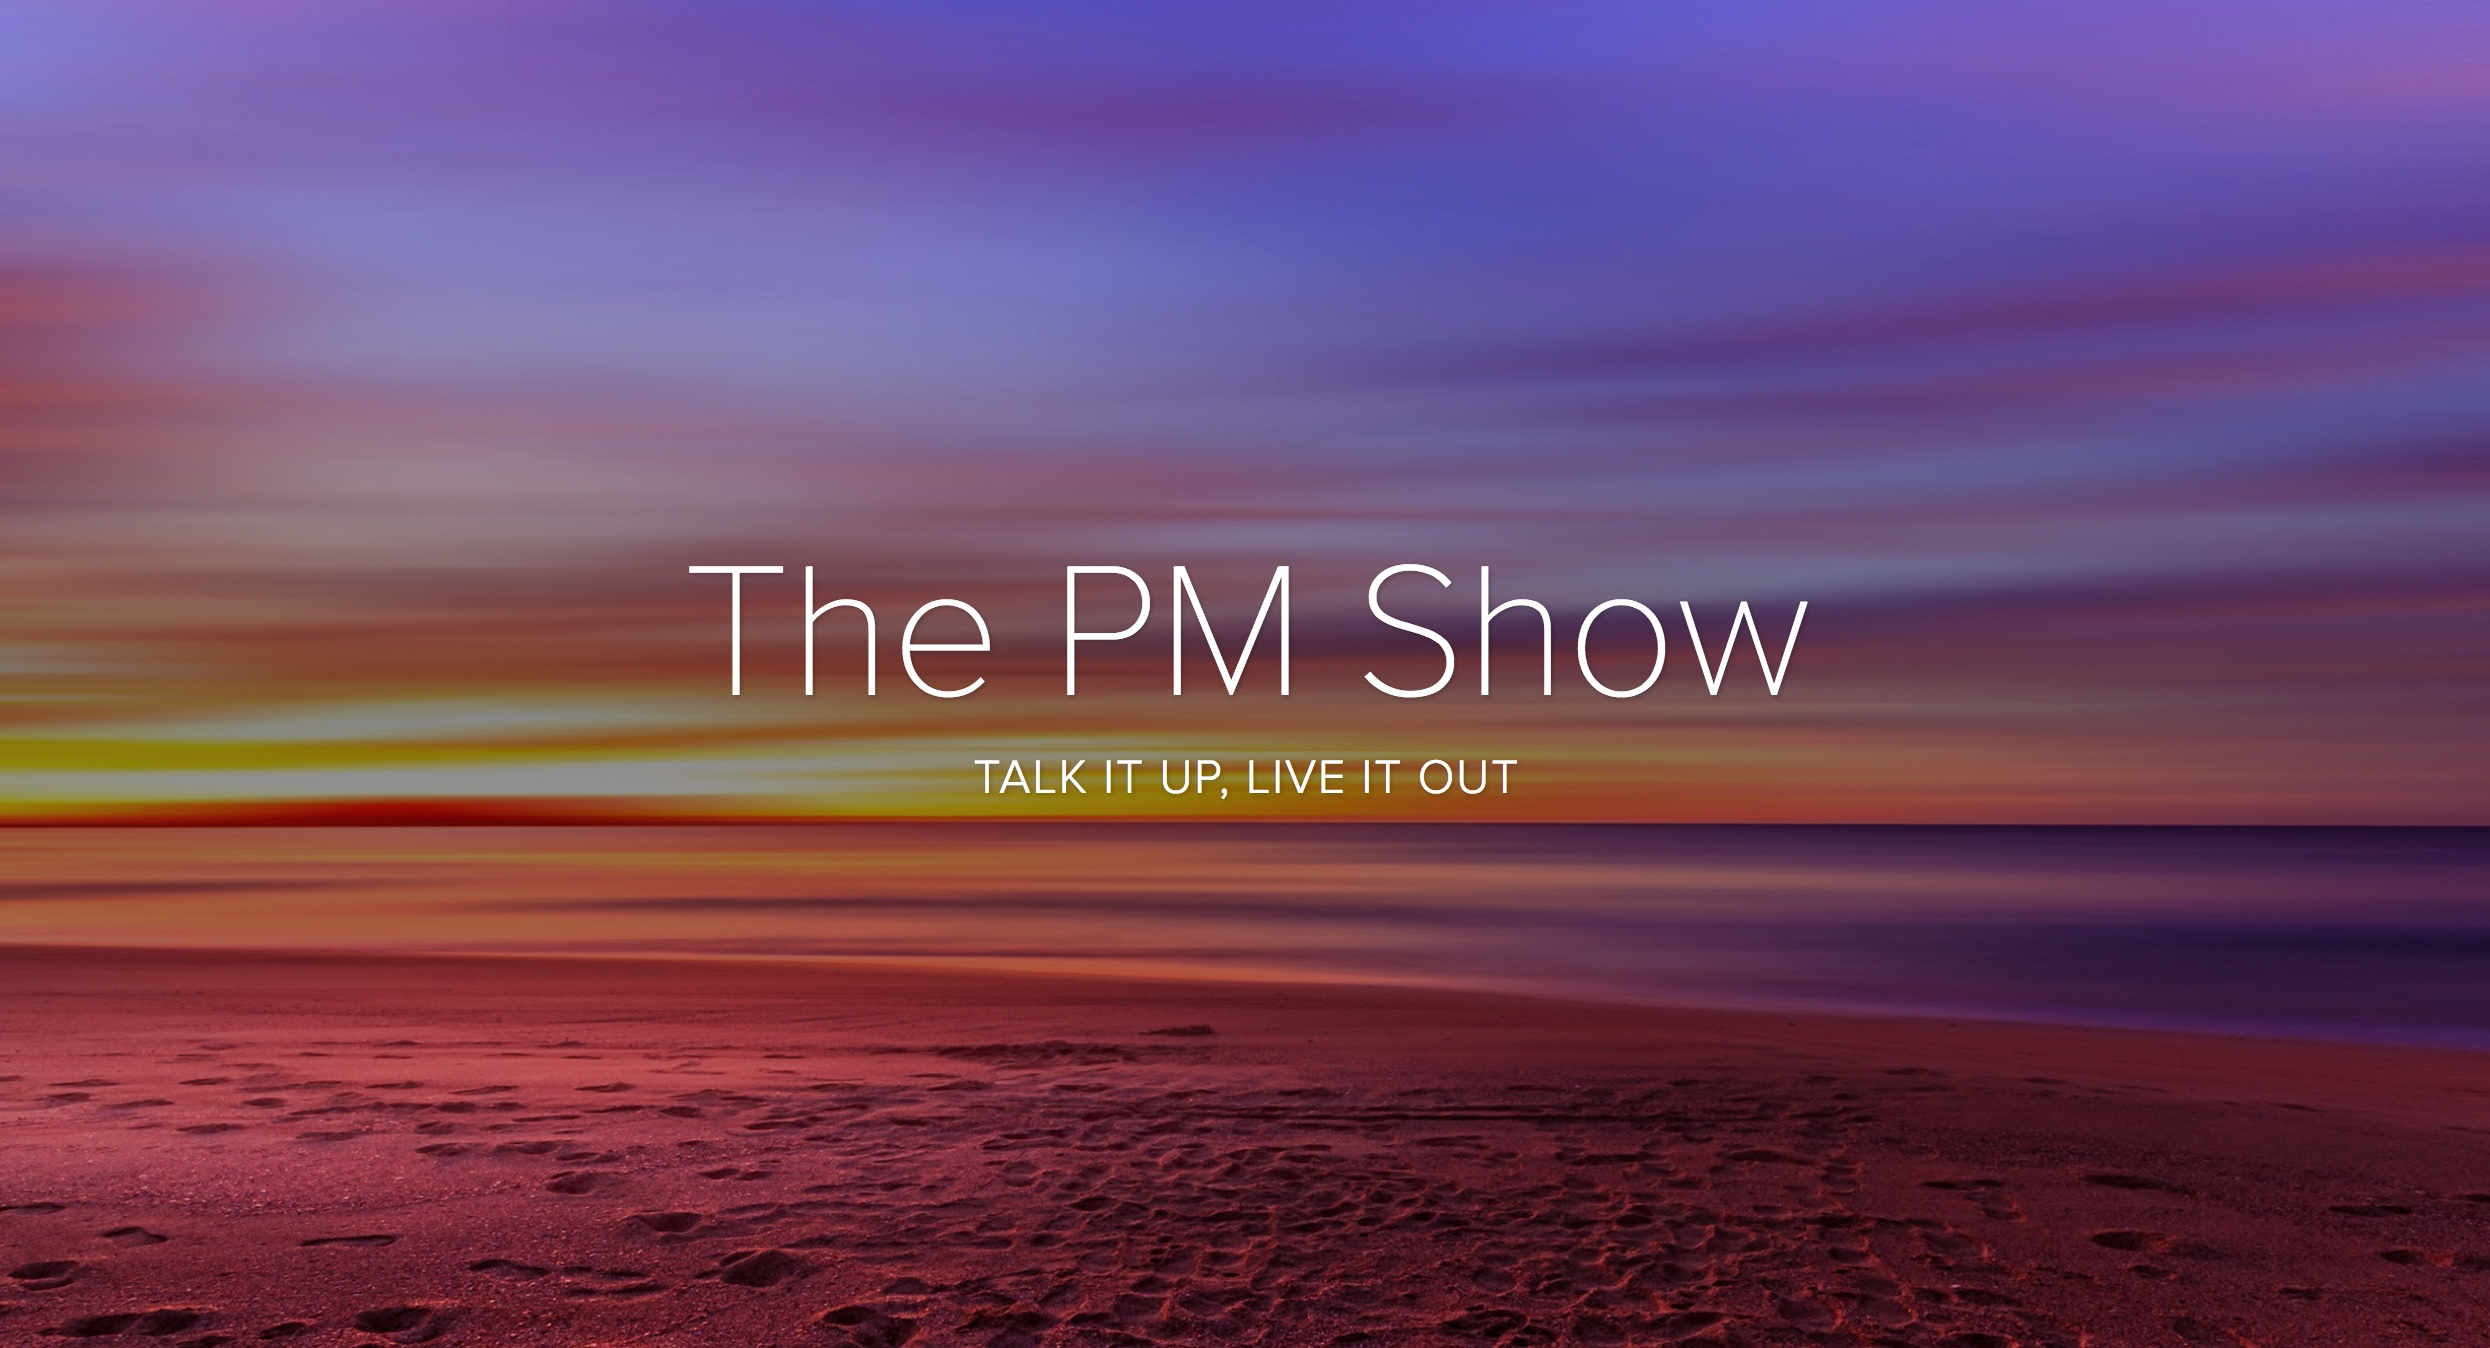 The PM Show.jpeg